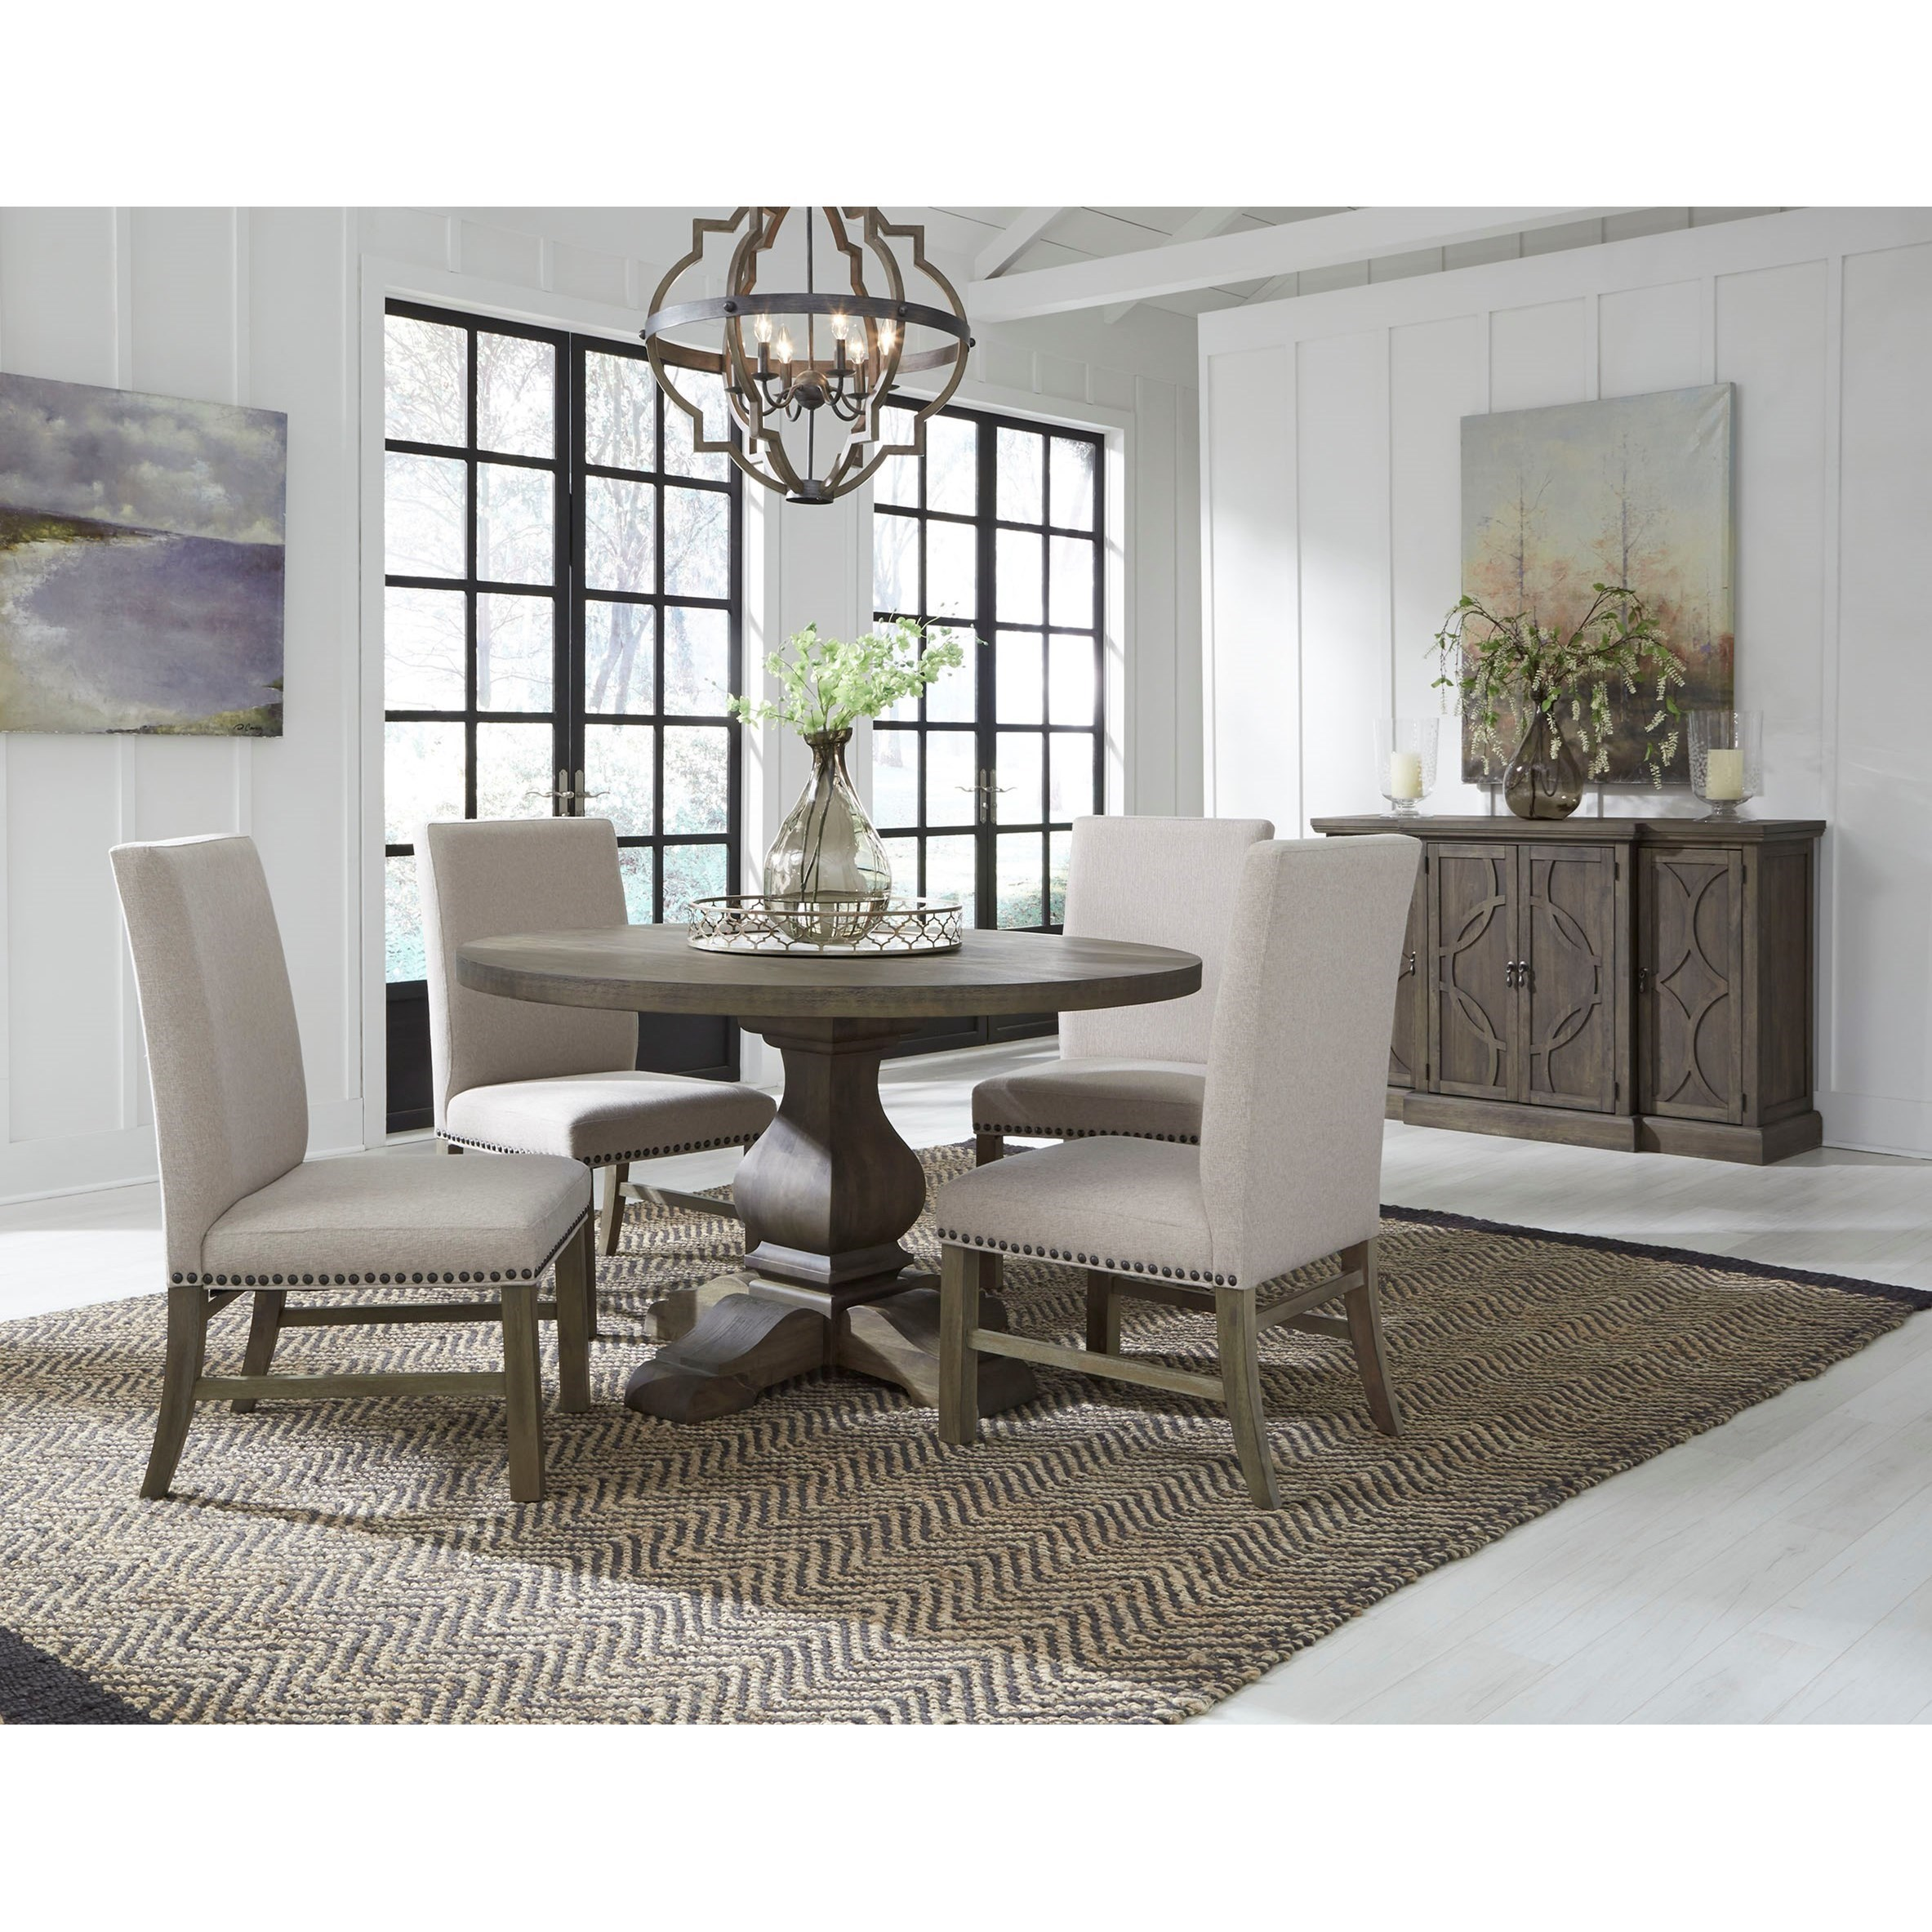 Bon Trenton Casual Dining Room Group By Standard Furniture